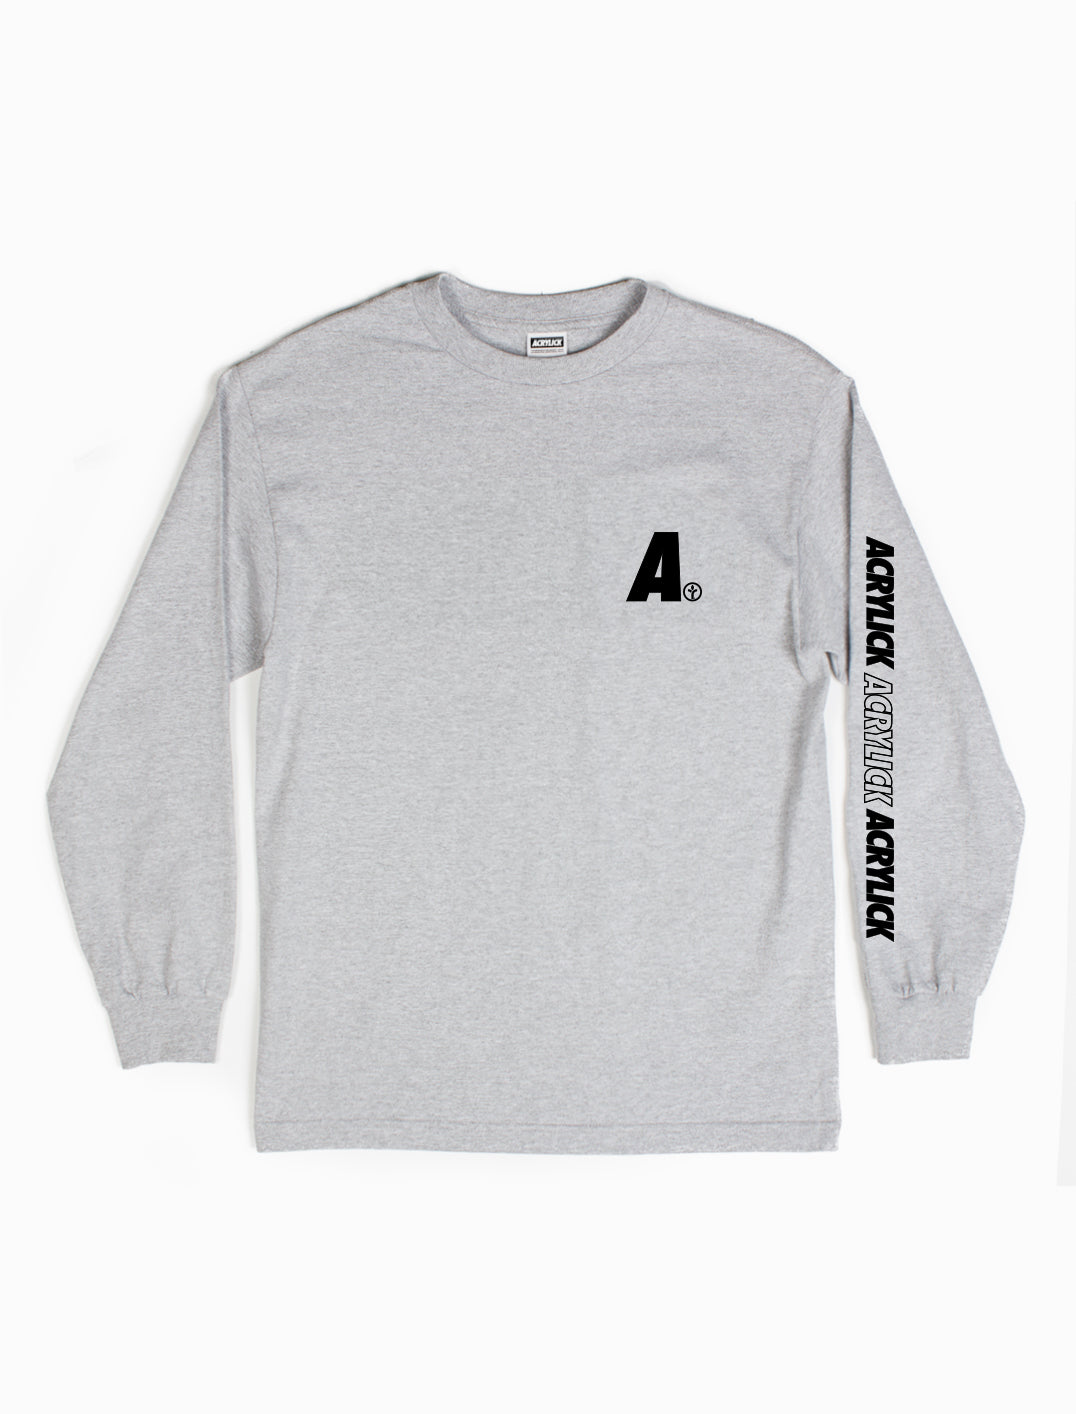 A-Plus Long Sleeve Tee